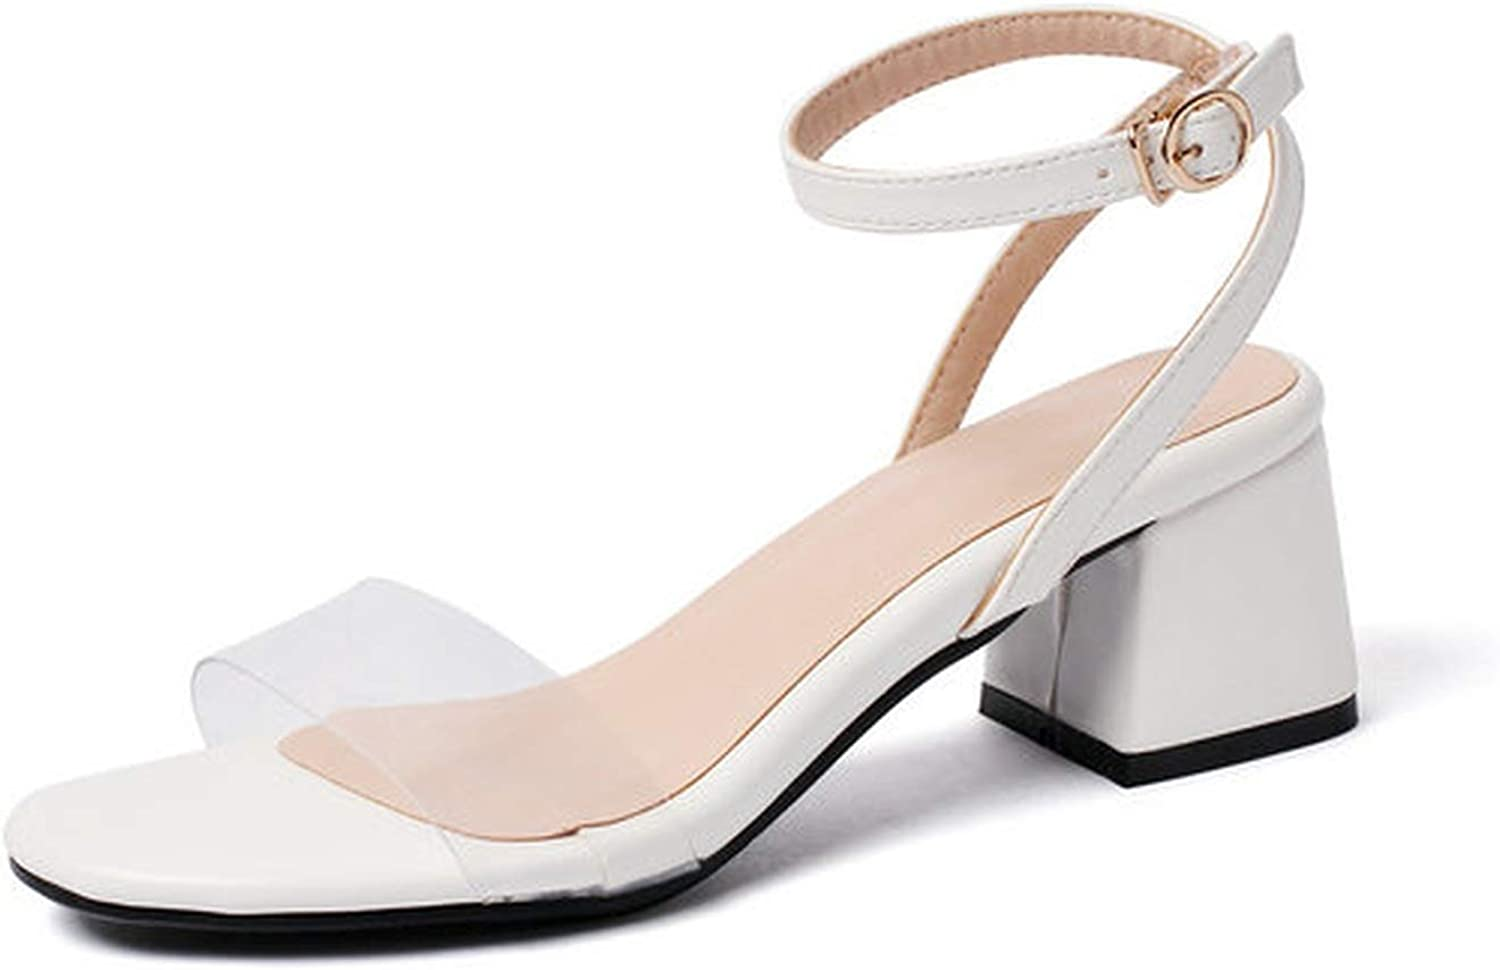 Women Sandals Pu Leather Transparent Round Open-Toed Buckle Square High Heel Slingback Anti-Skid